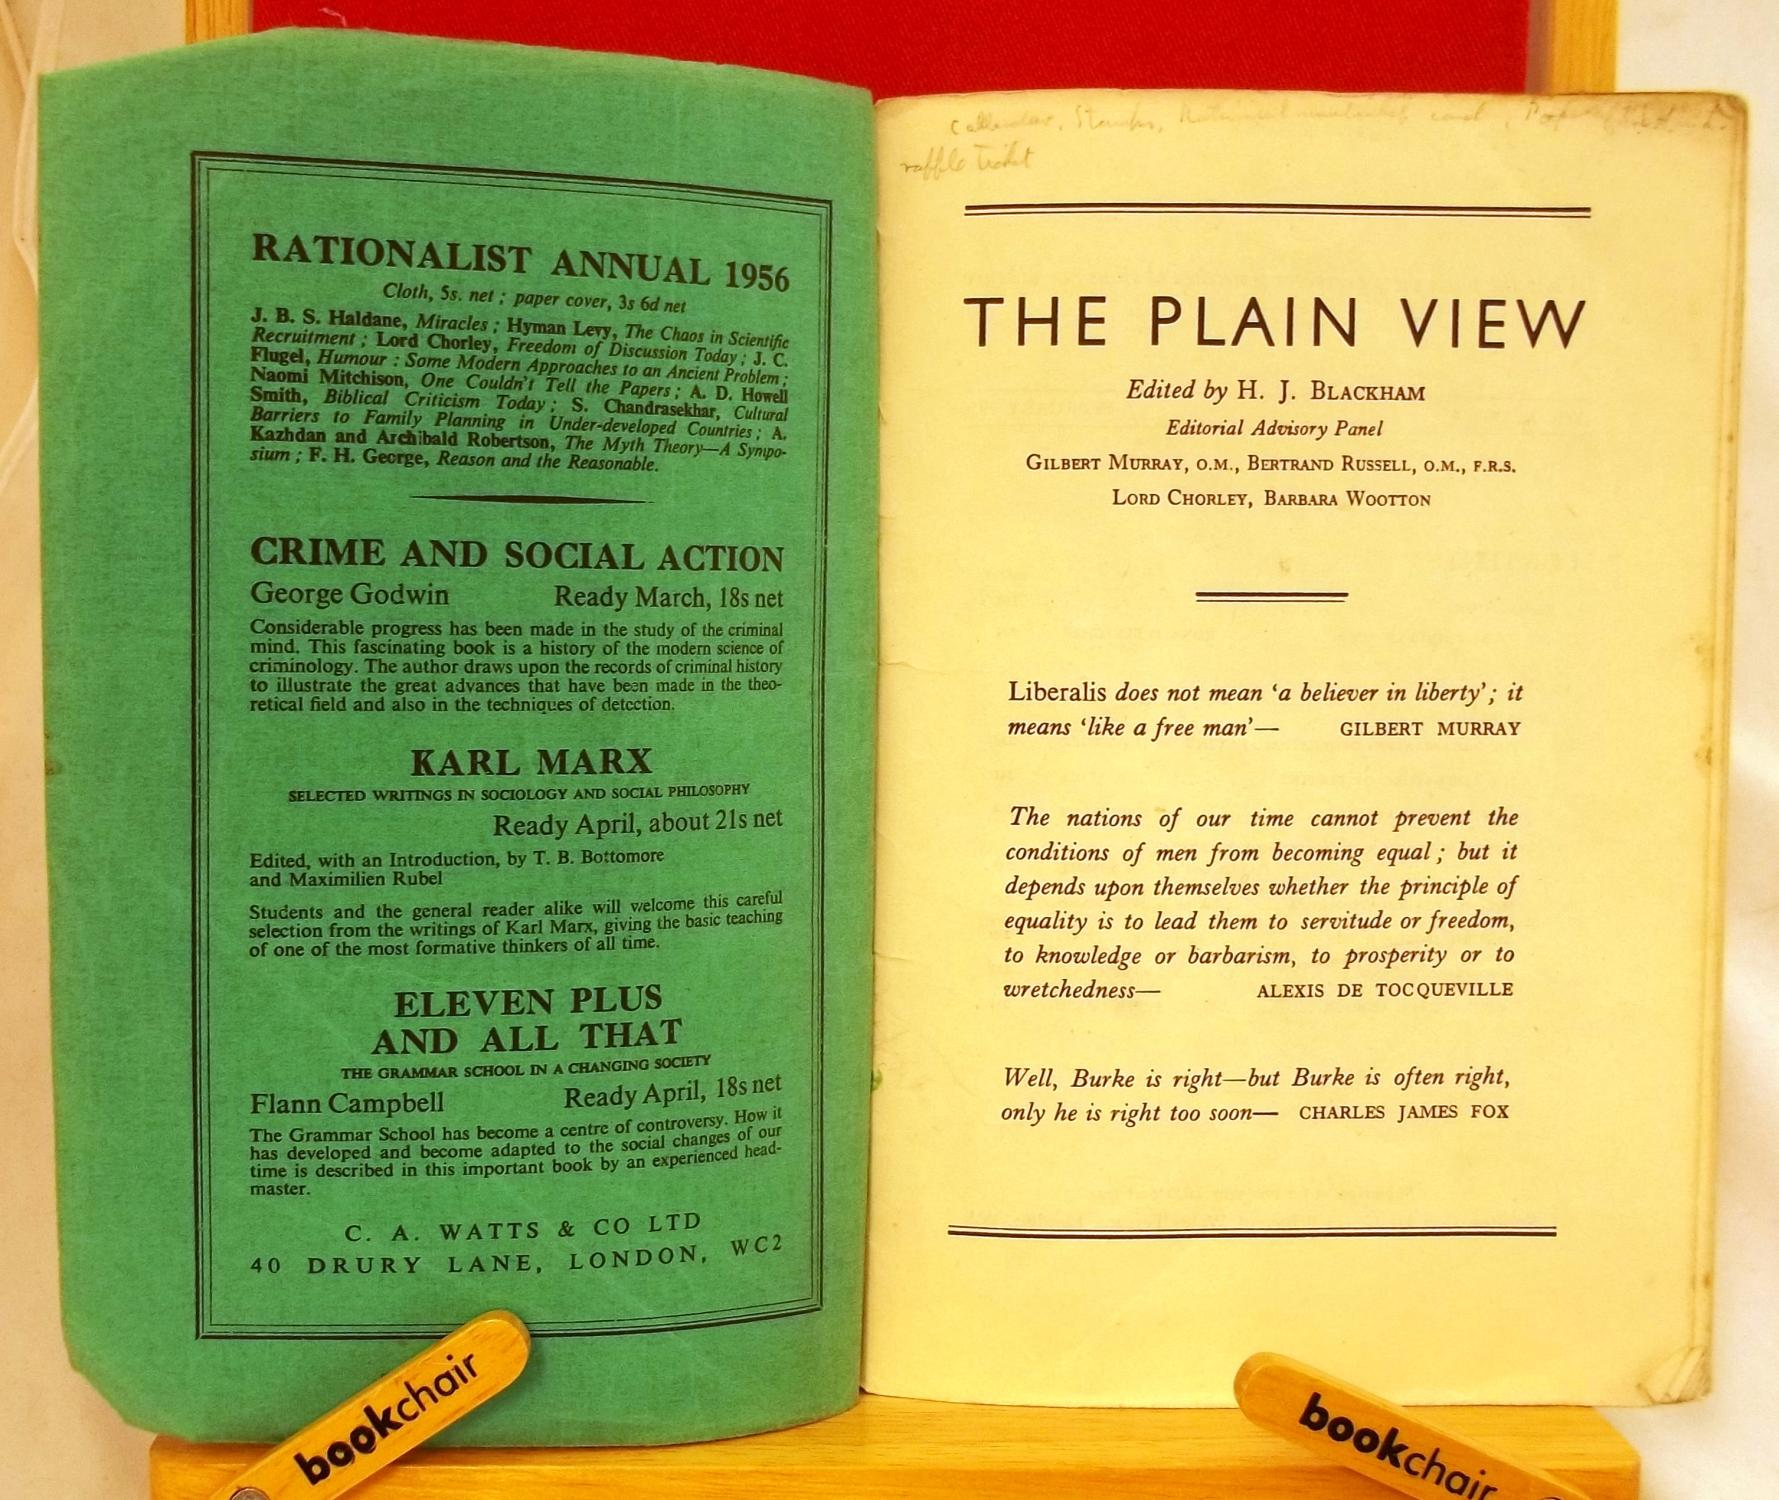 the plain view spring 1956 by ronald fletcher the ethiocal union